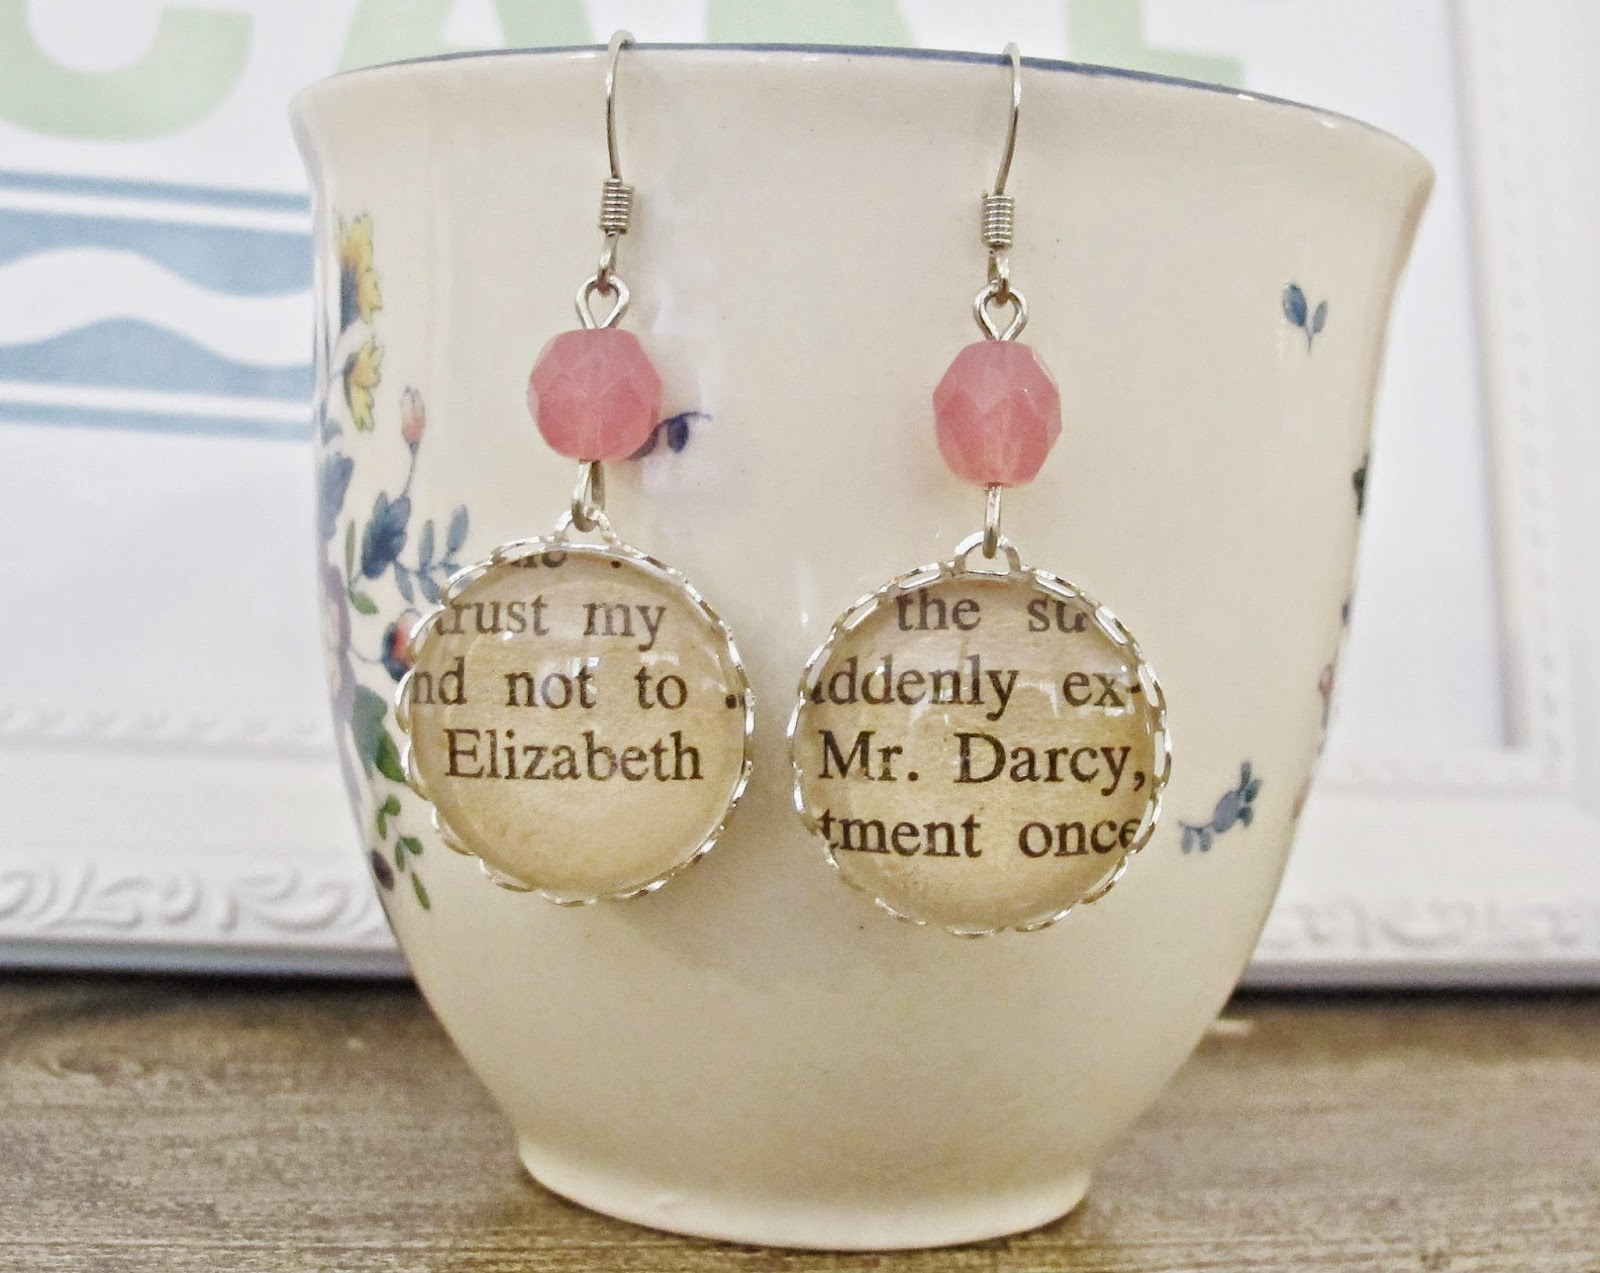 image pride and prejudice earrings jewellery jewelry jane austen mr darcy elizabeth bennet pink two cheeky monkeys literature